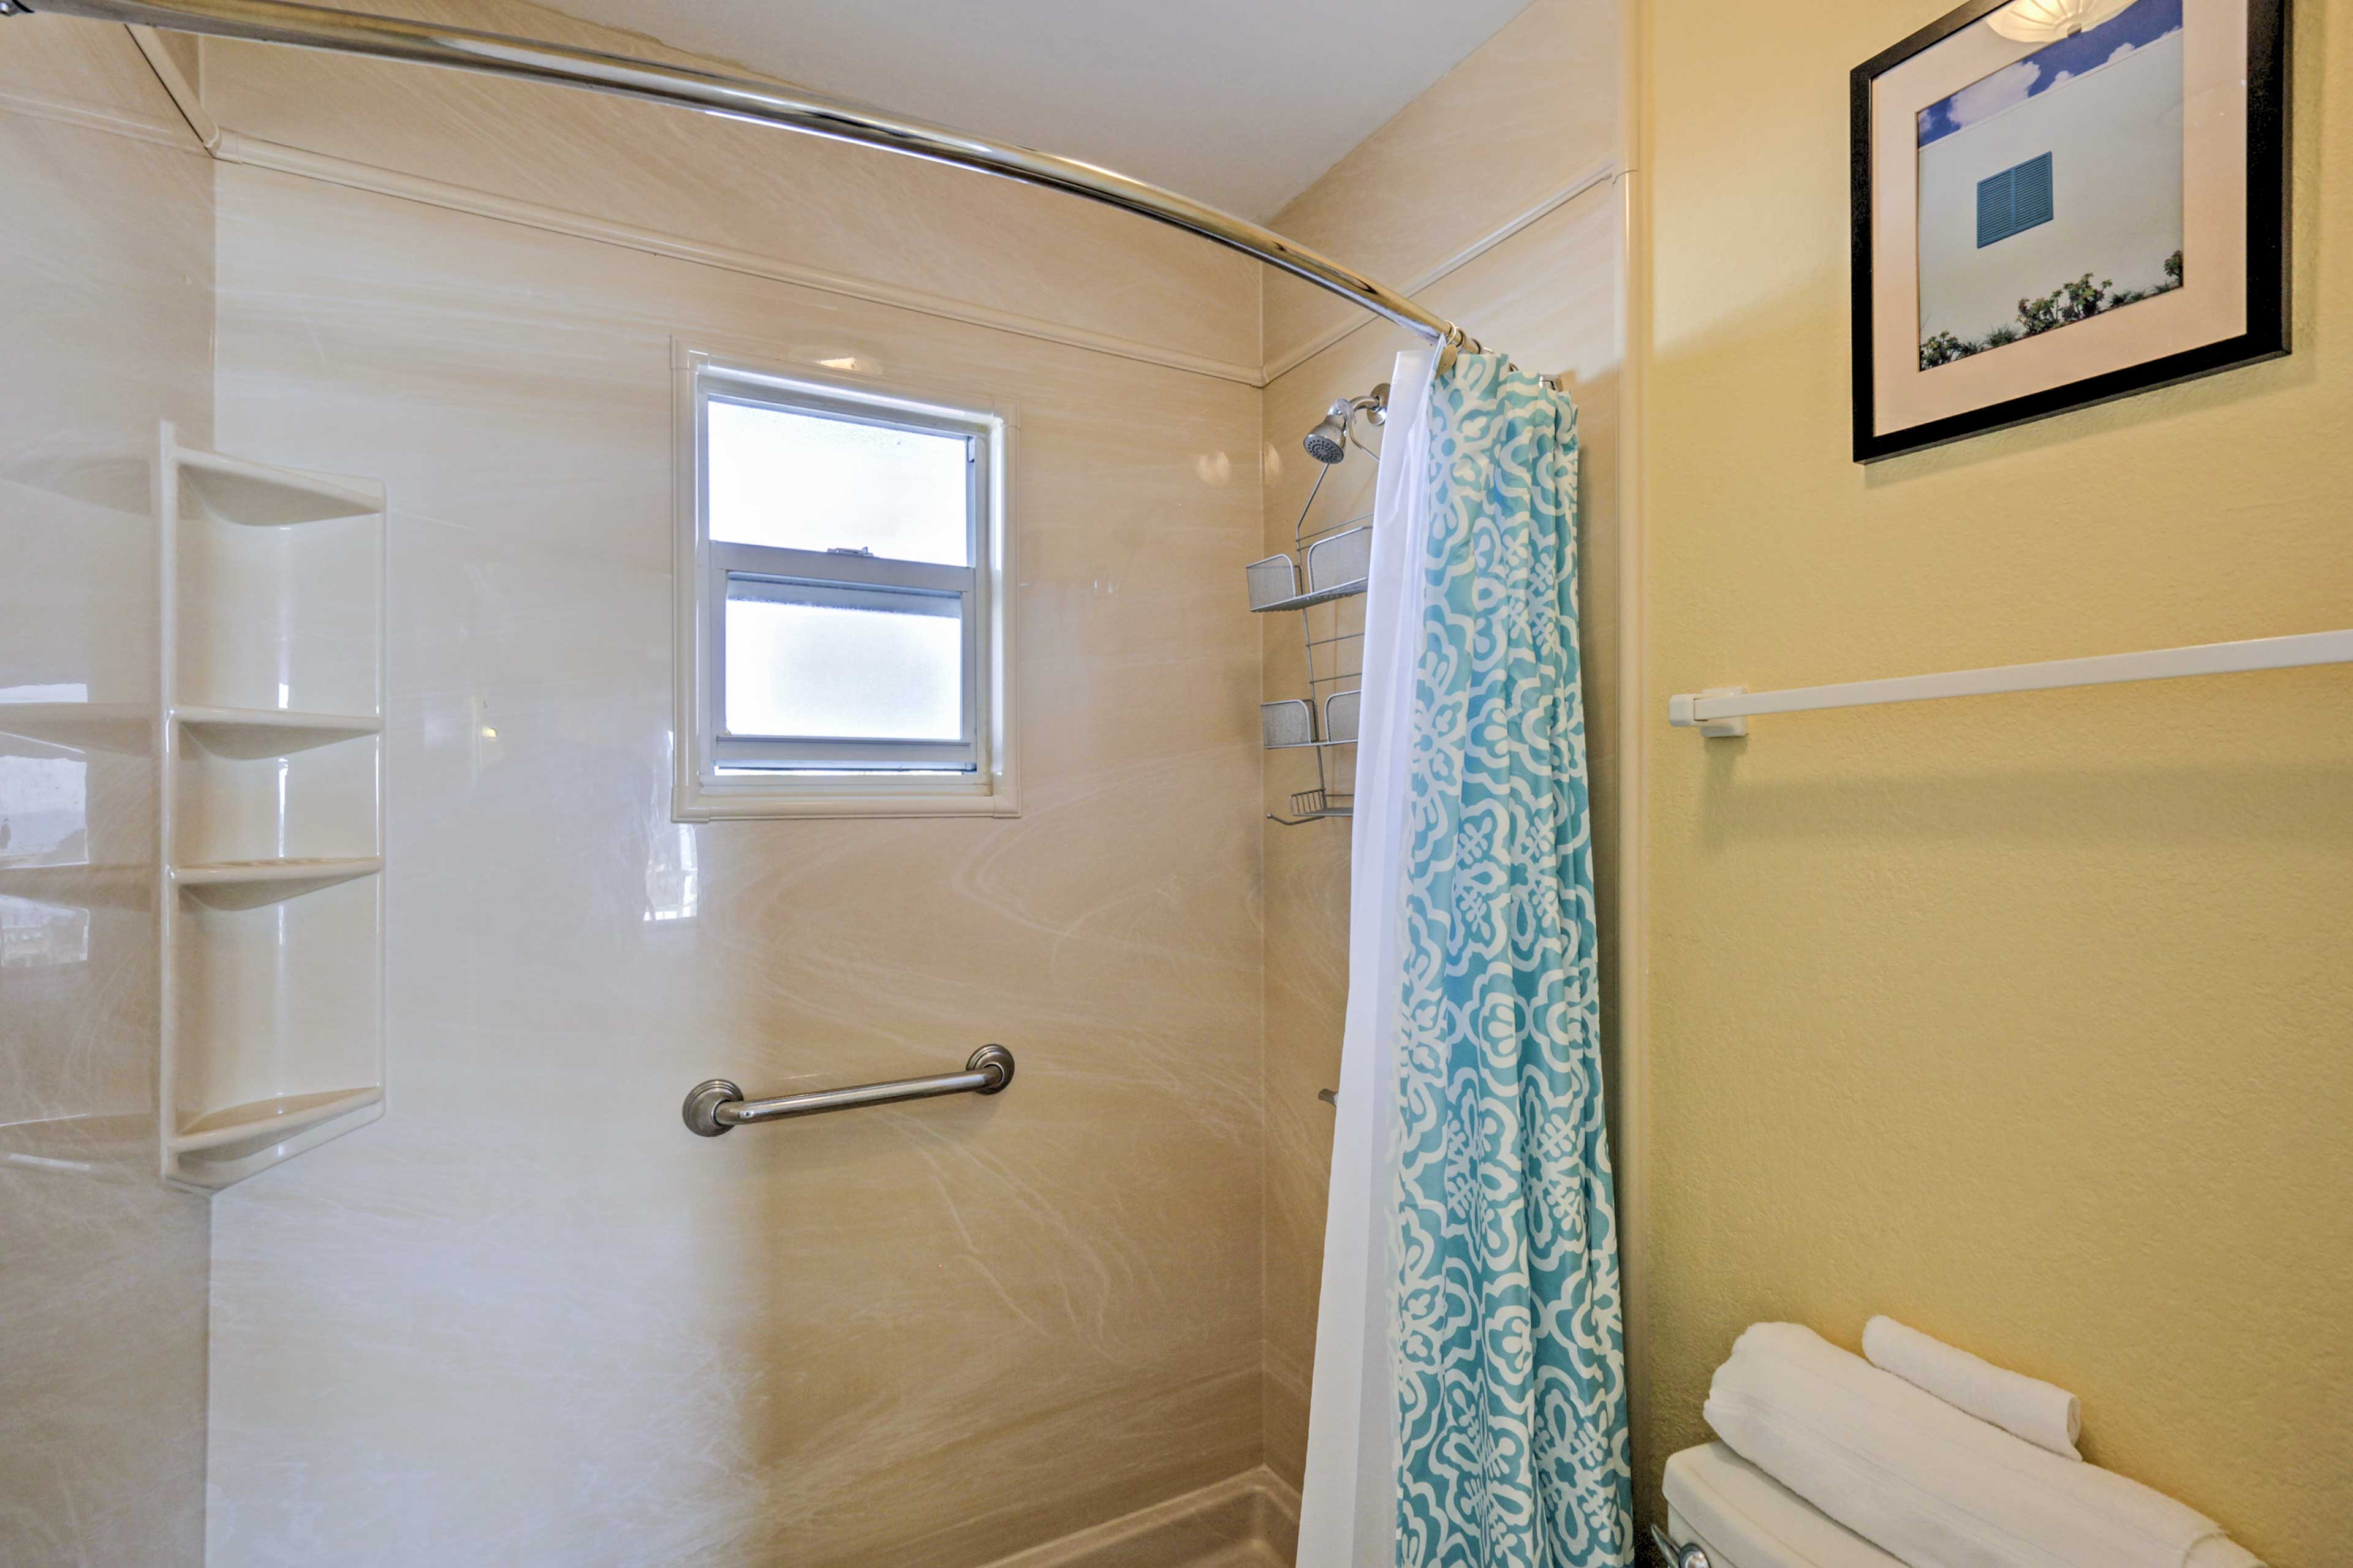 The bathroom features a walk-in shower.